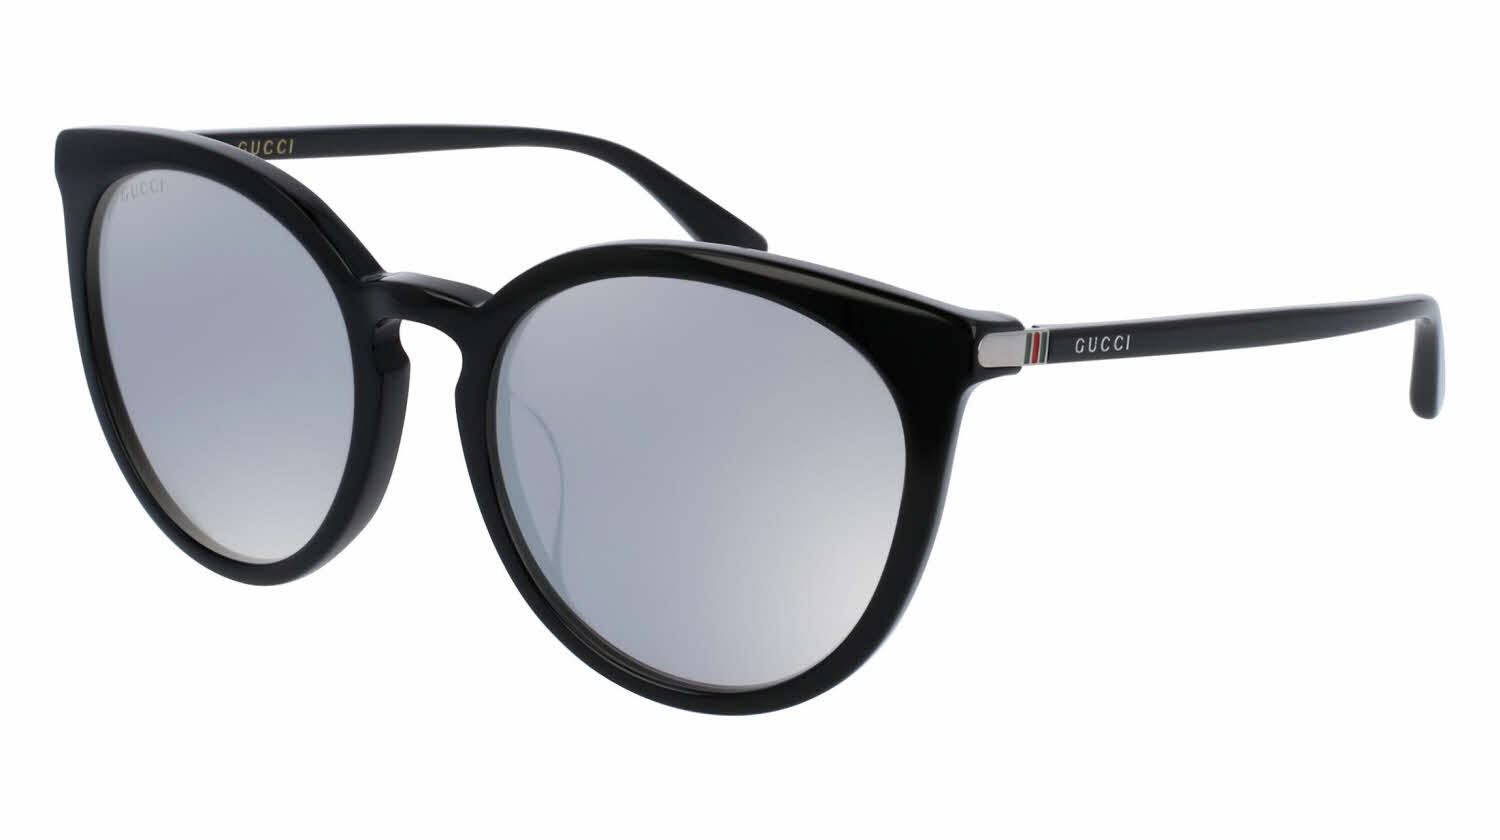 gucci sunglasses. gucci gg0064sk - alternate fit sunglasses